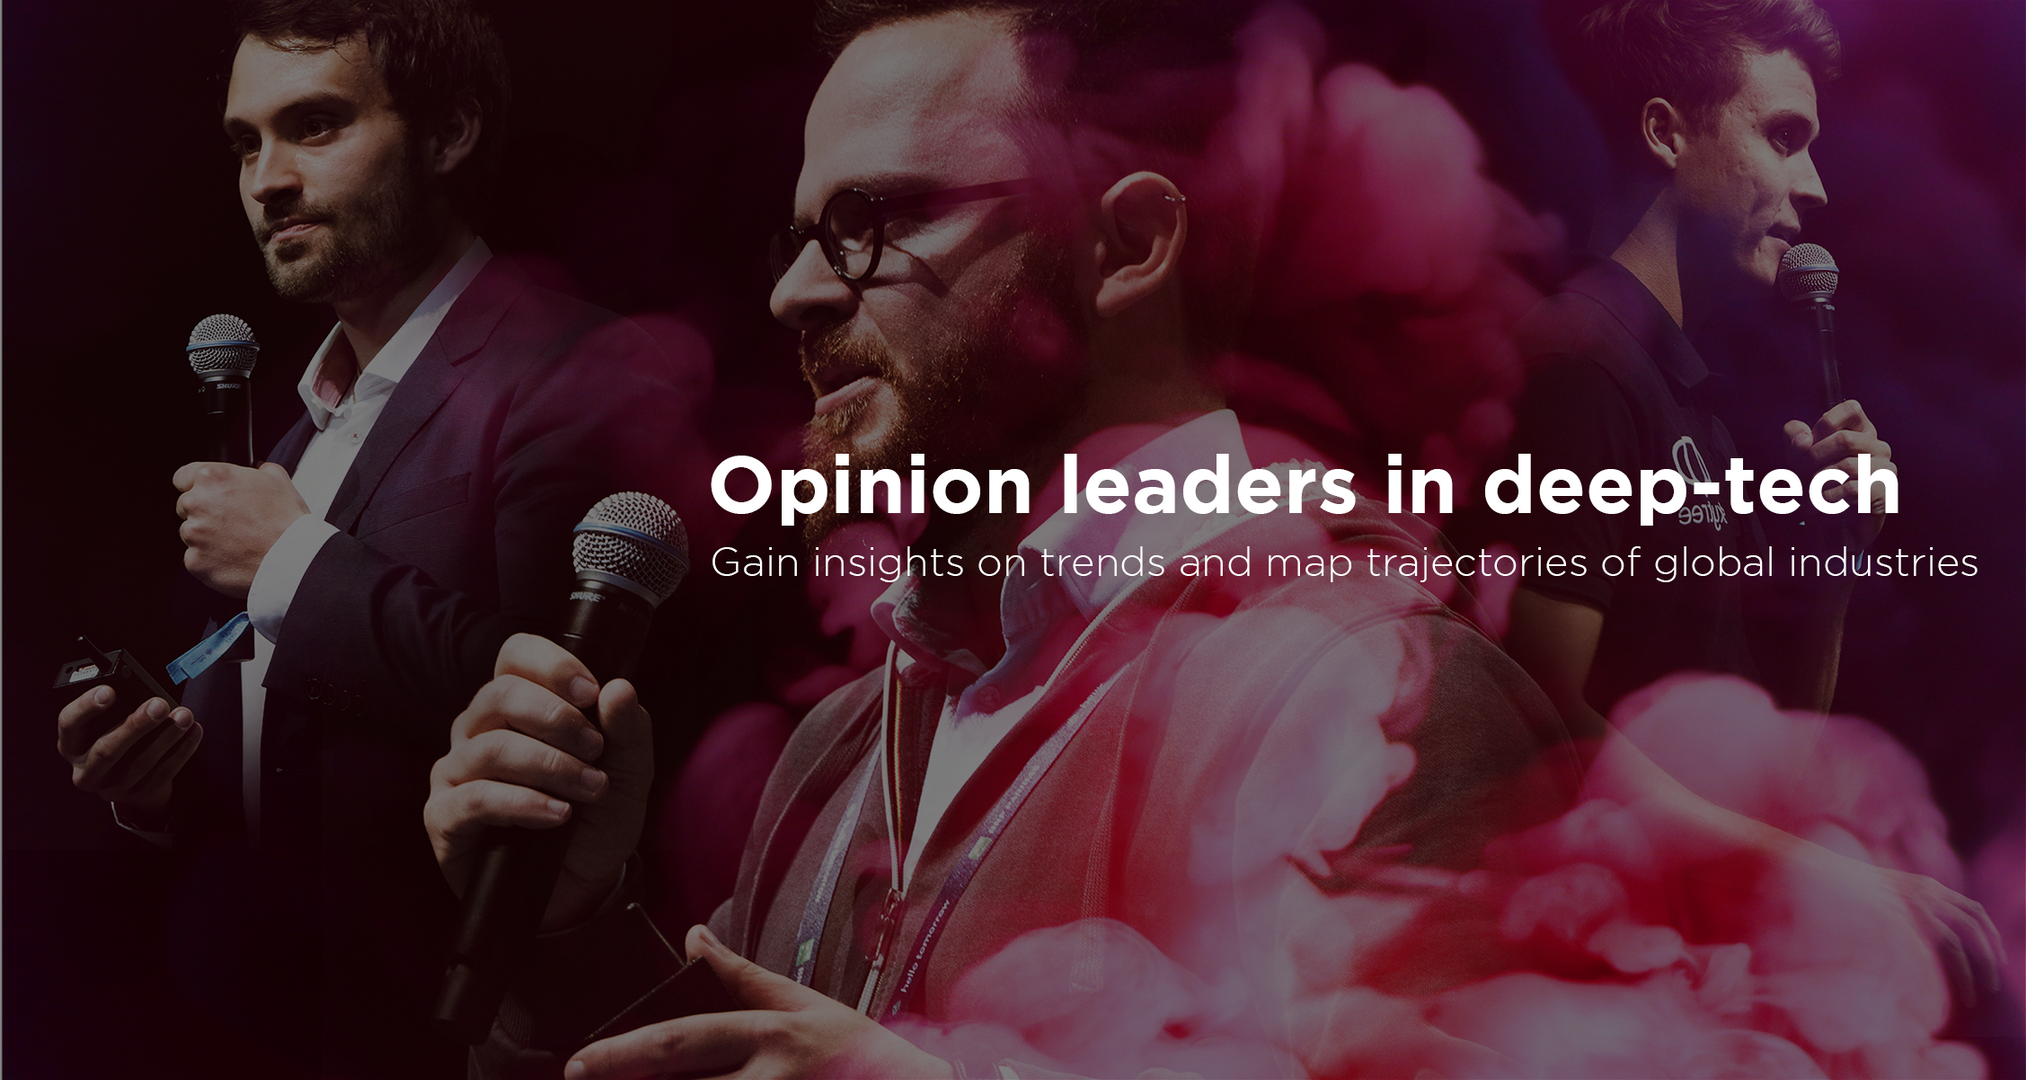 Opinion leaders in deep tech